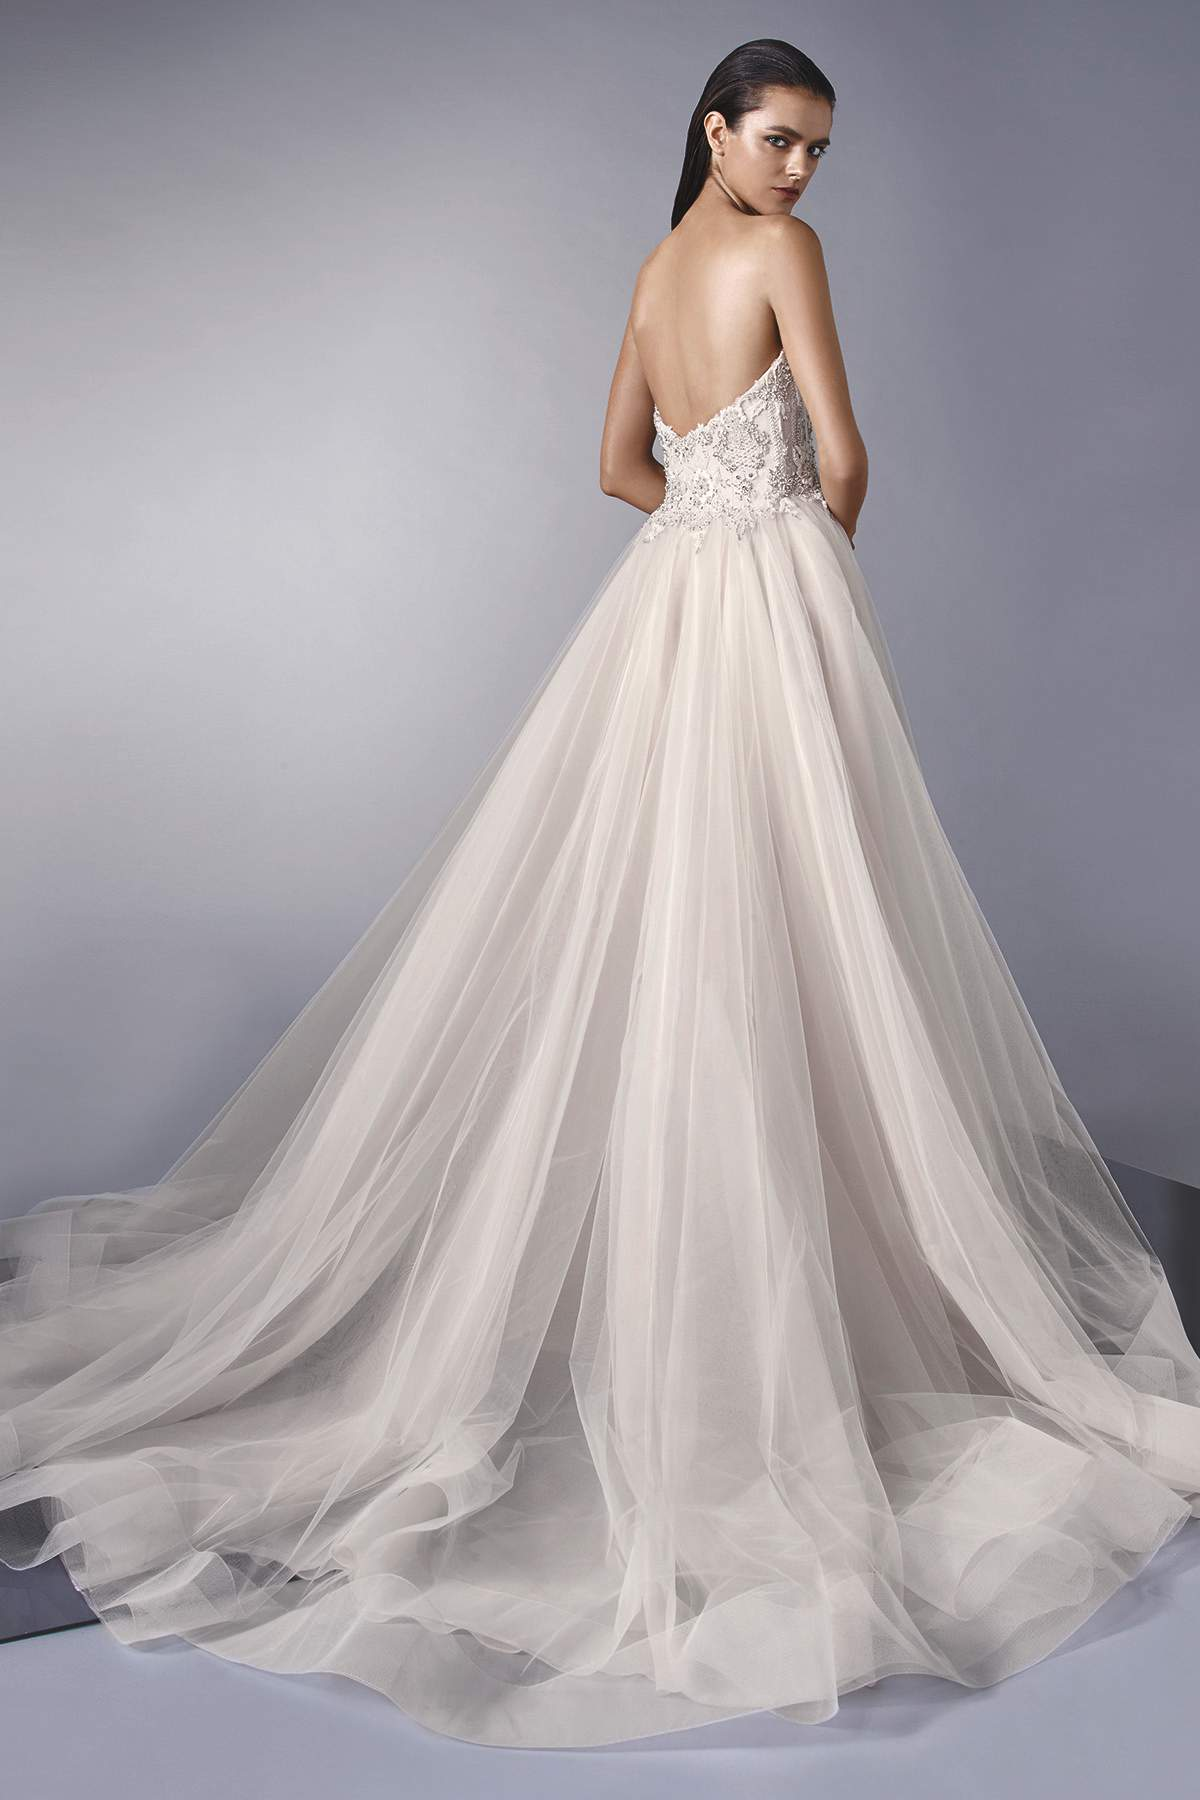 5143cd00b8861 Mariela by Enzoani - Find Your Dream Dress